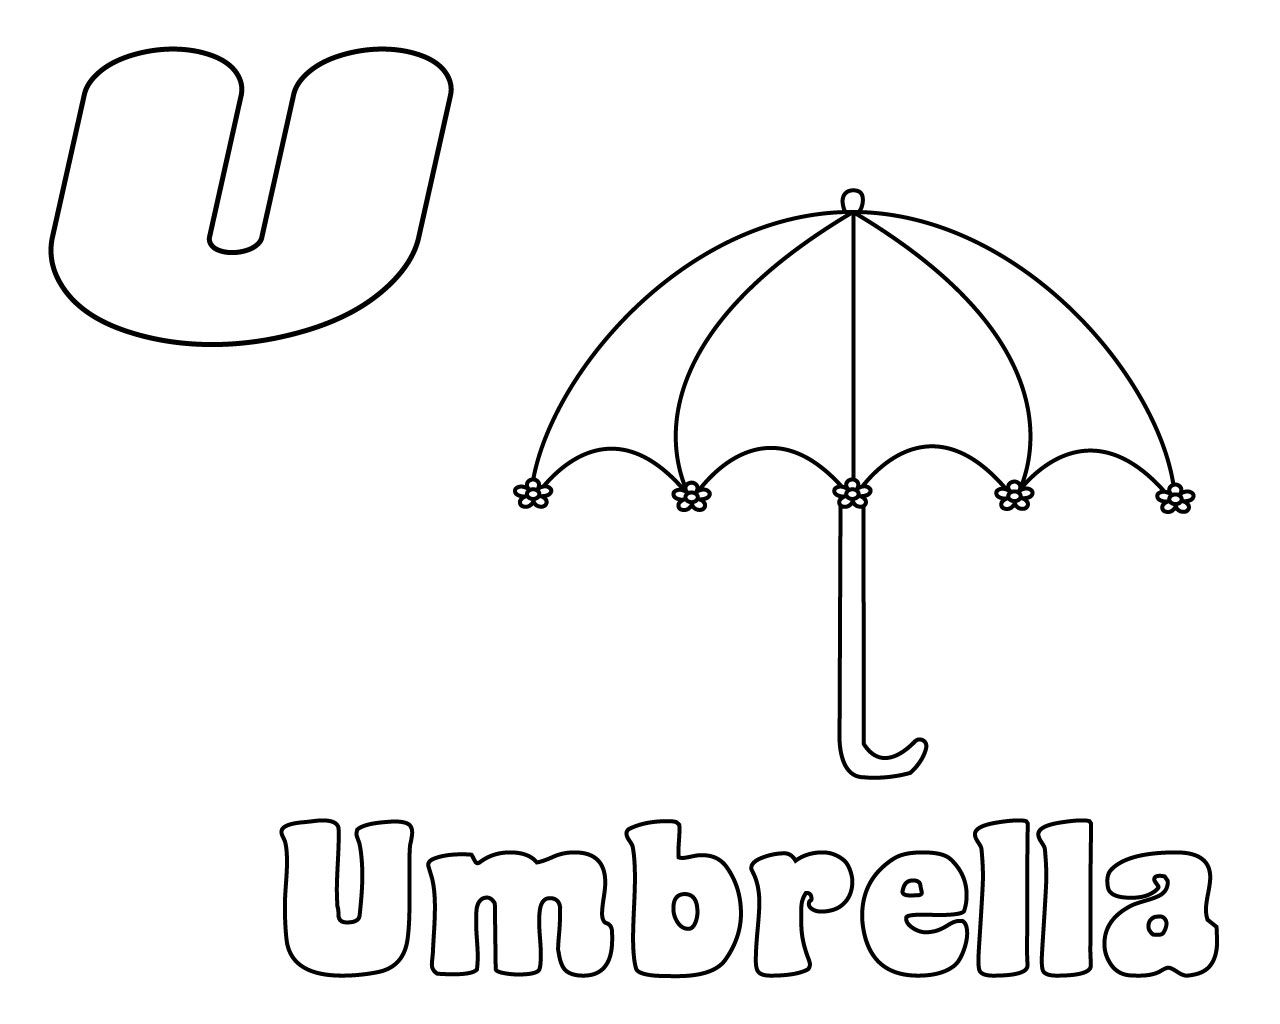 Letter U Coloring Pages Preschool Coloring pages, Free